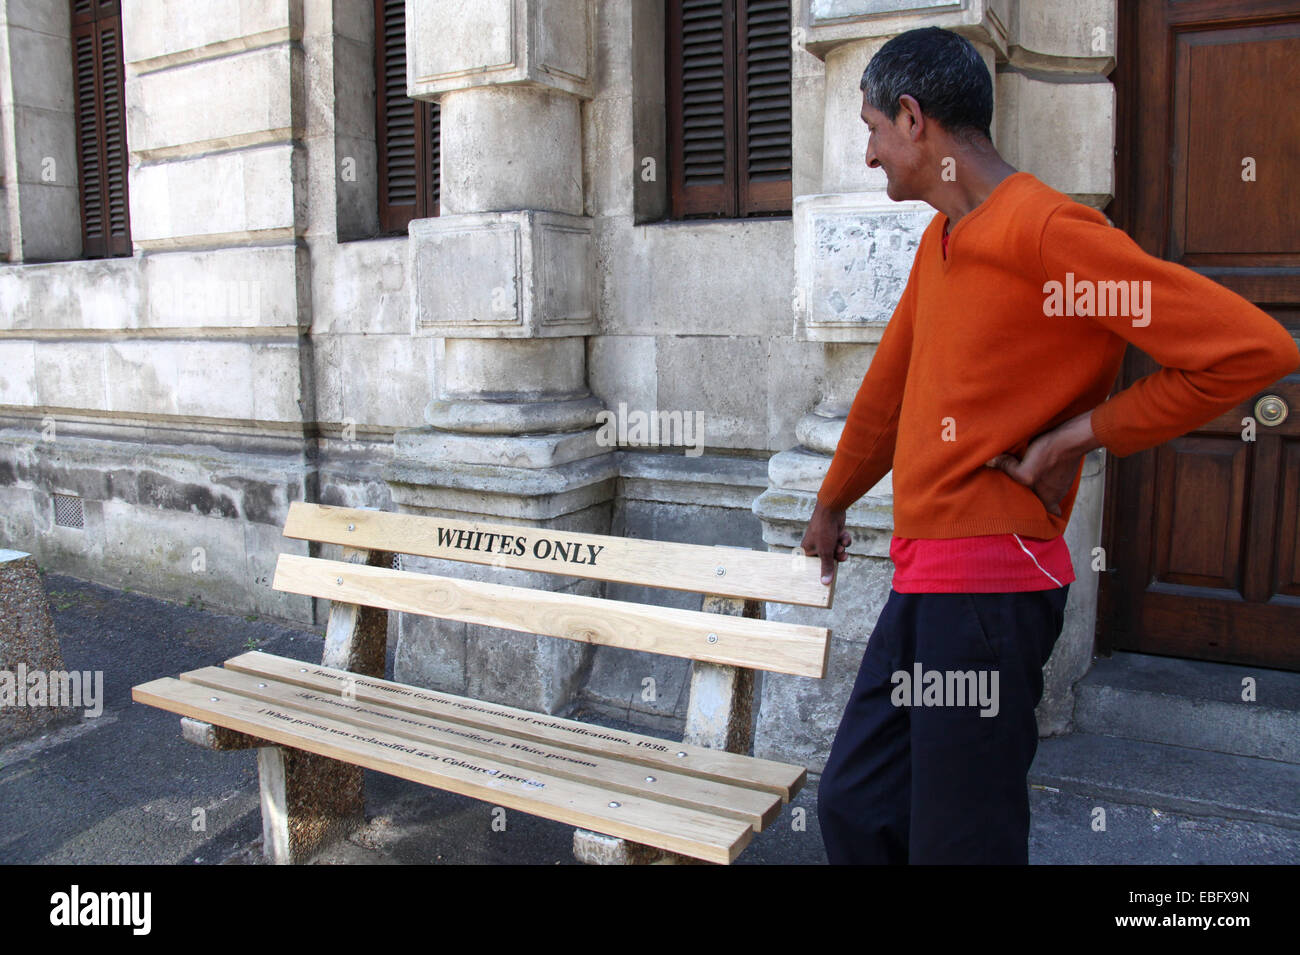 Whites Only Apartheid-era bench in Cape Town - Stock Image